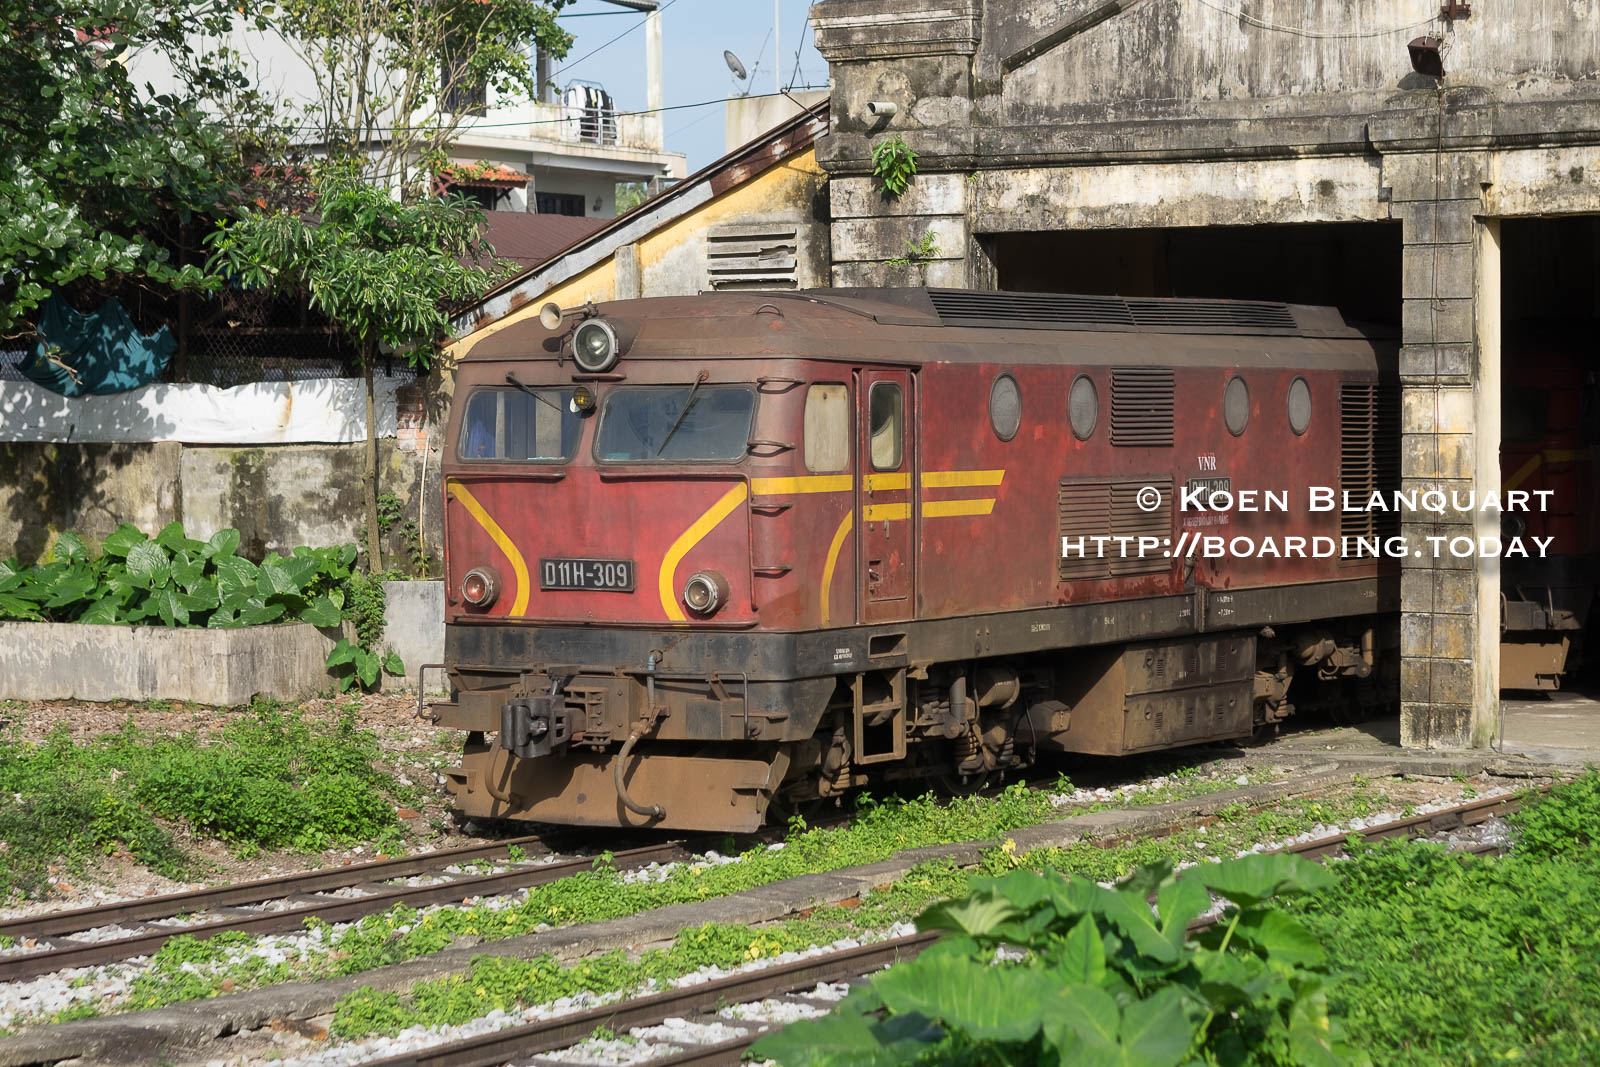 An older locomotive near the railway station of Hue, Vietnam